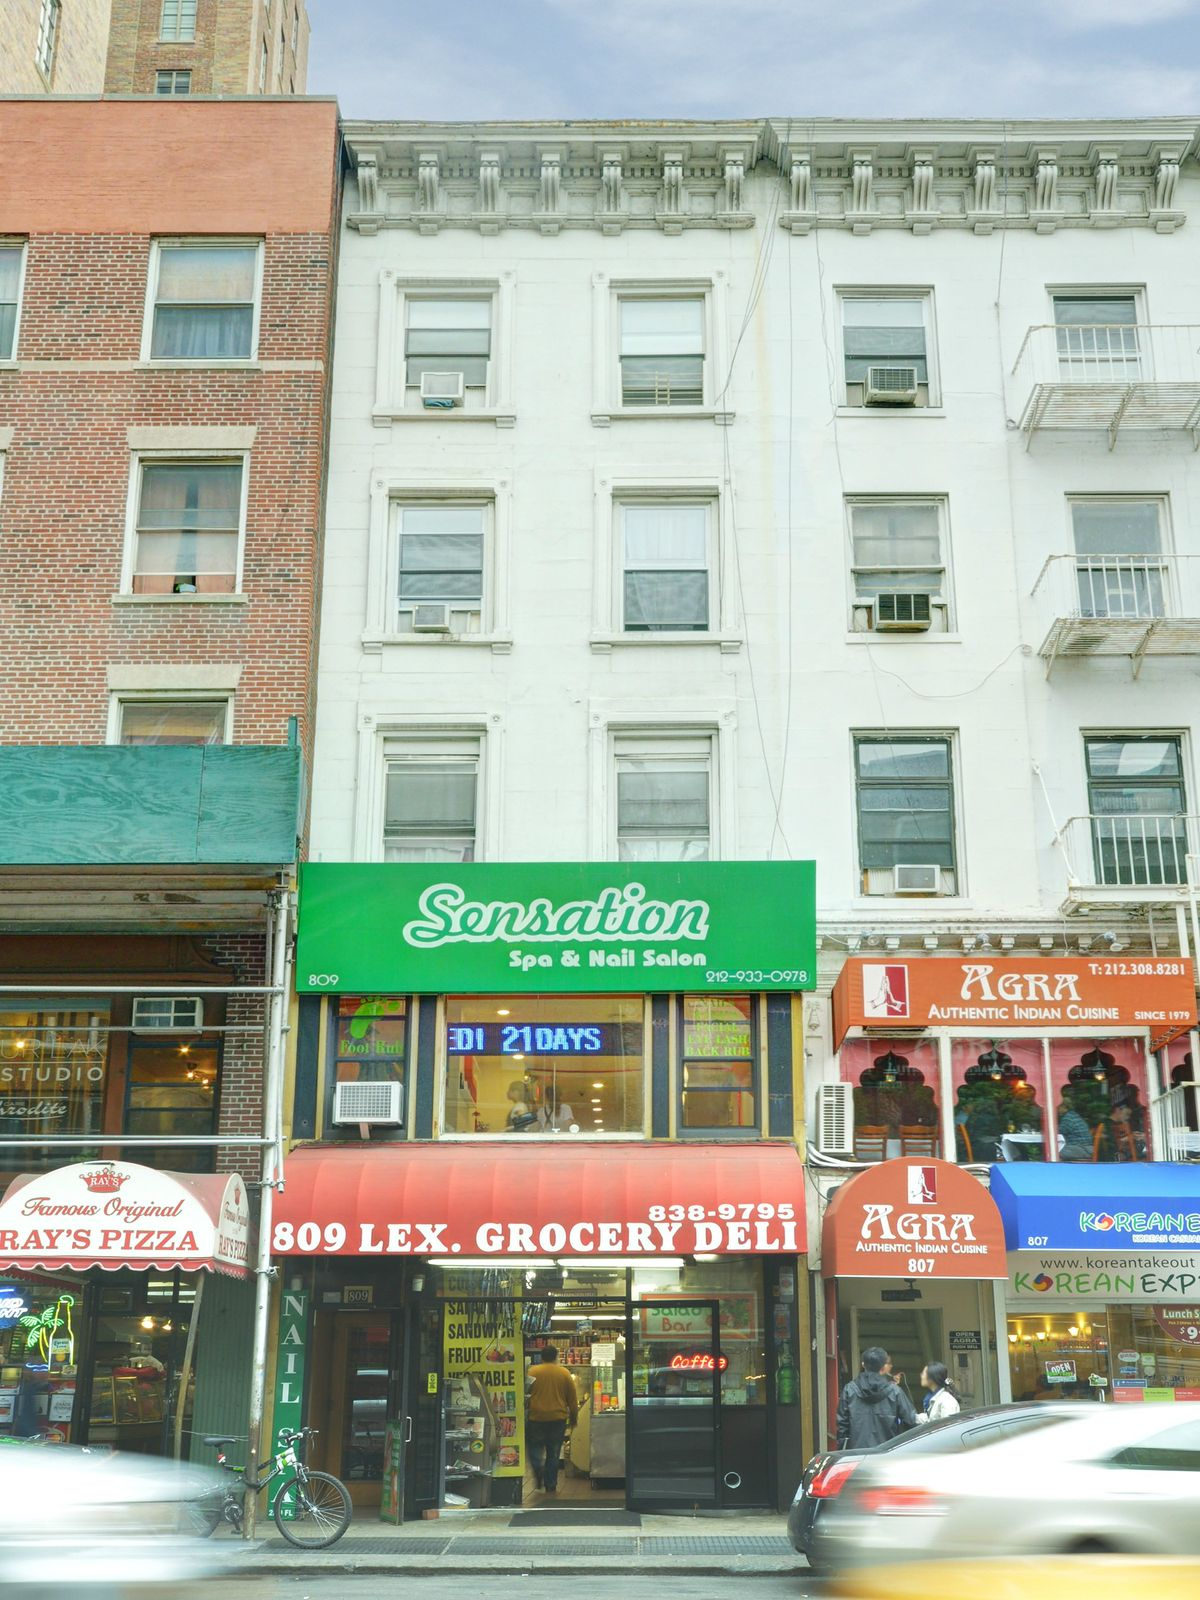 Location! Location! Location!, New York NY Multiple Units - New York City Real Estate